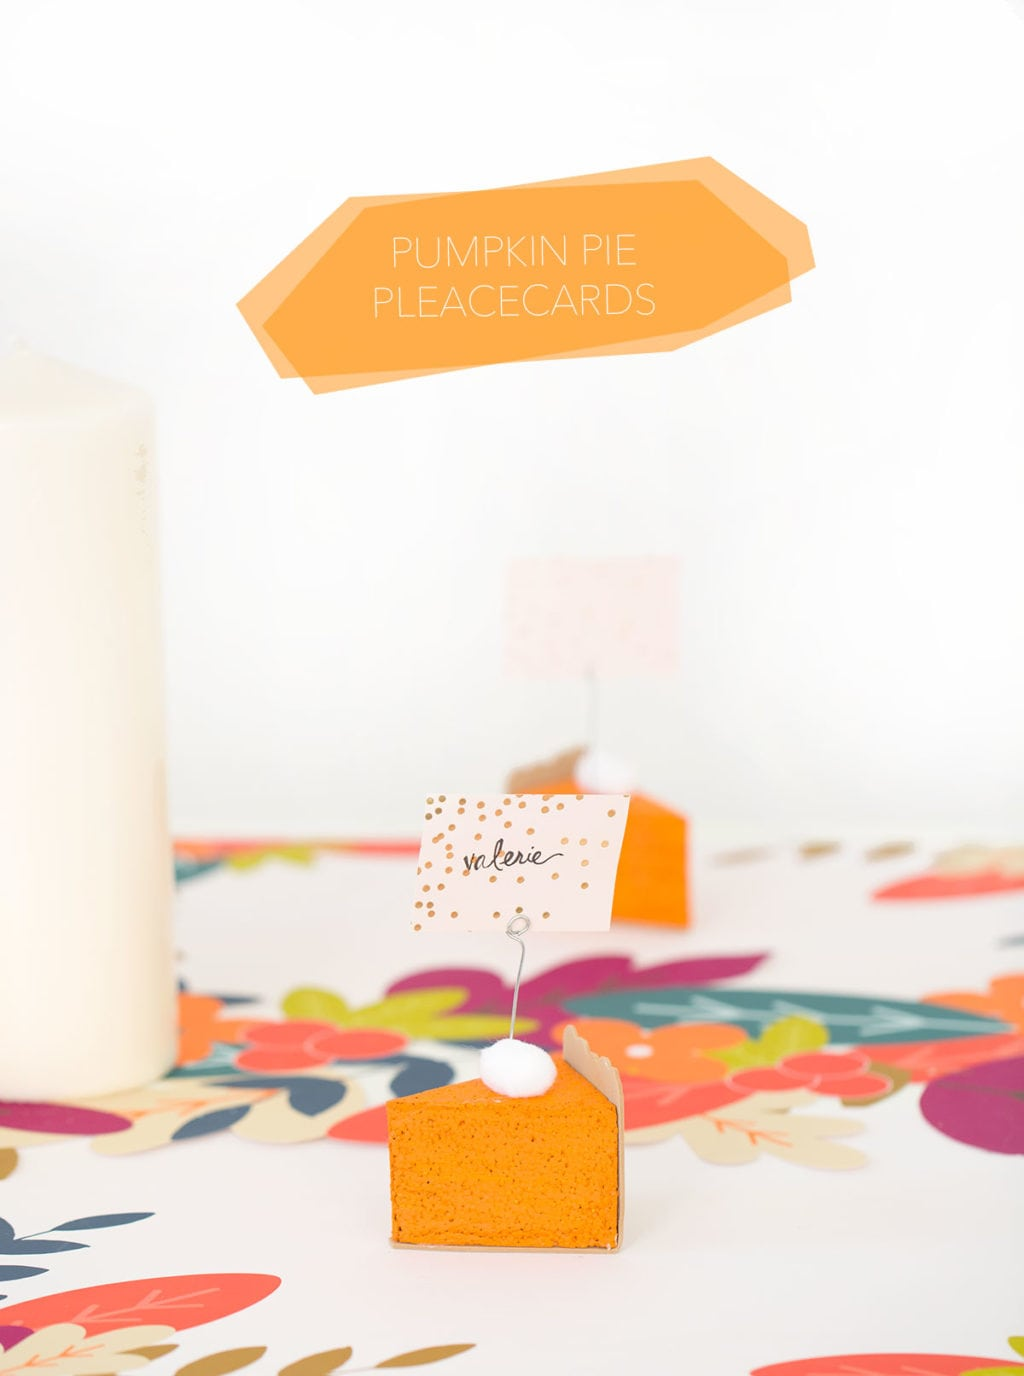 DIY Pumpkin Pie Placecards - Damask Love